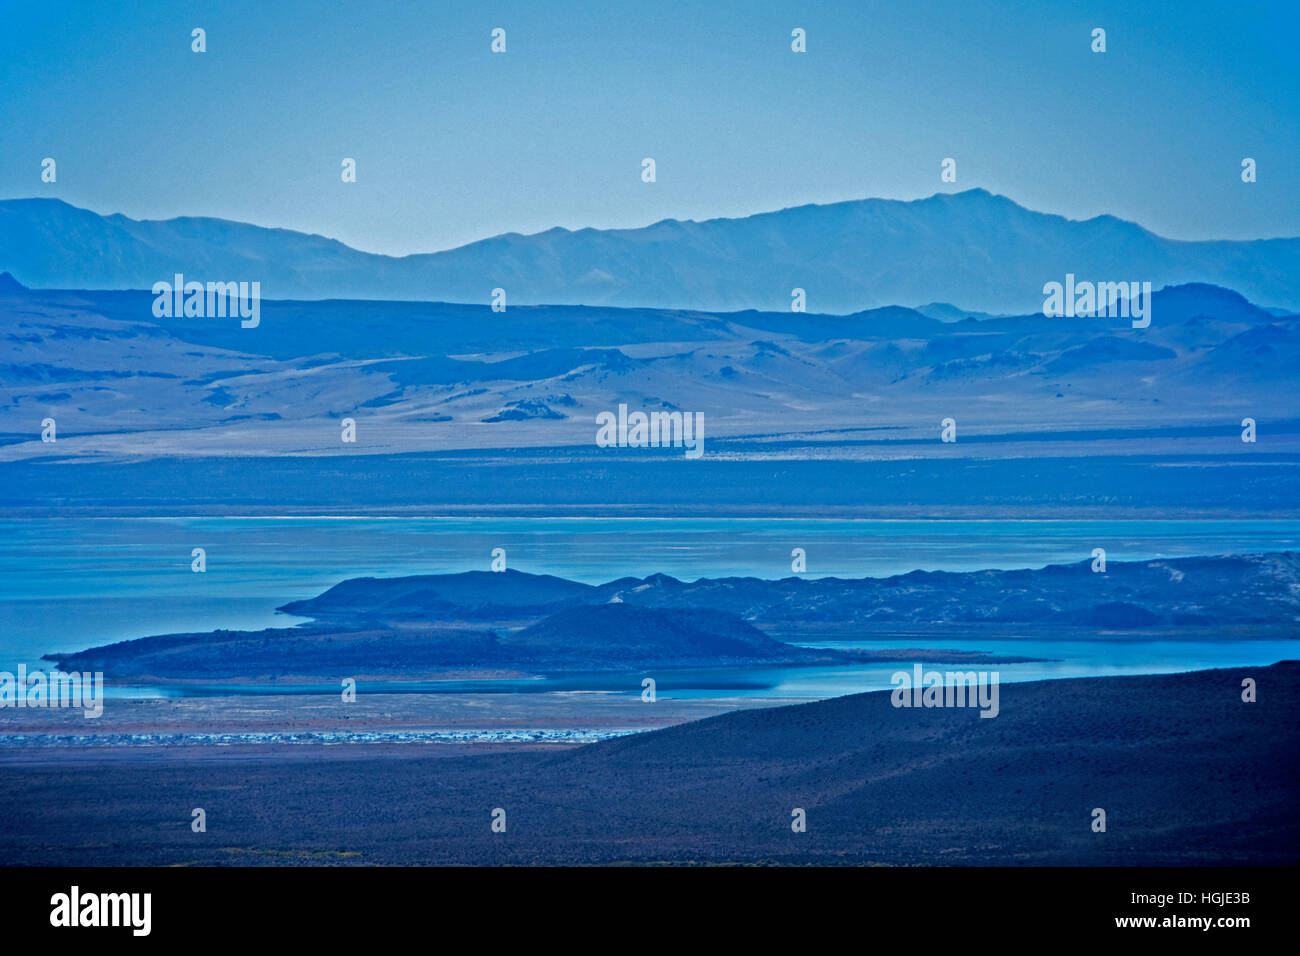 Mono Lake, a shallow saline soda lake, in California, during drought conditions. - Stock Image